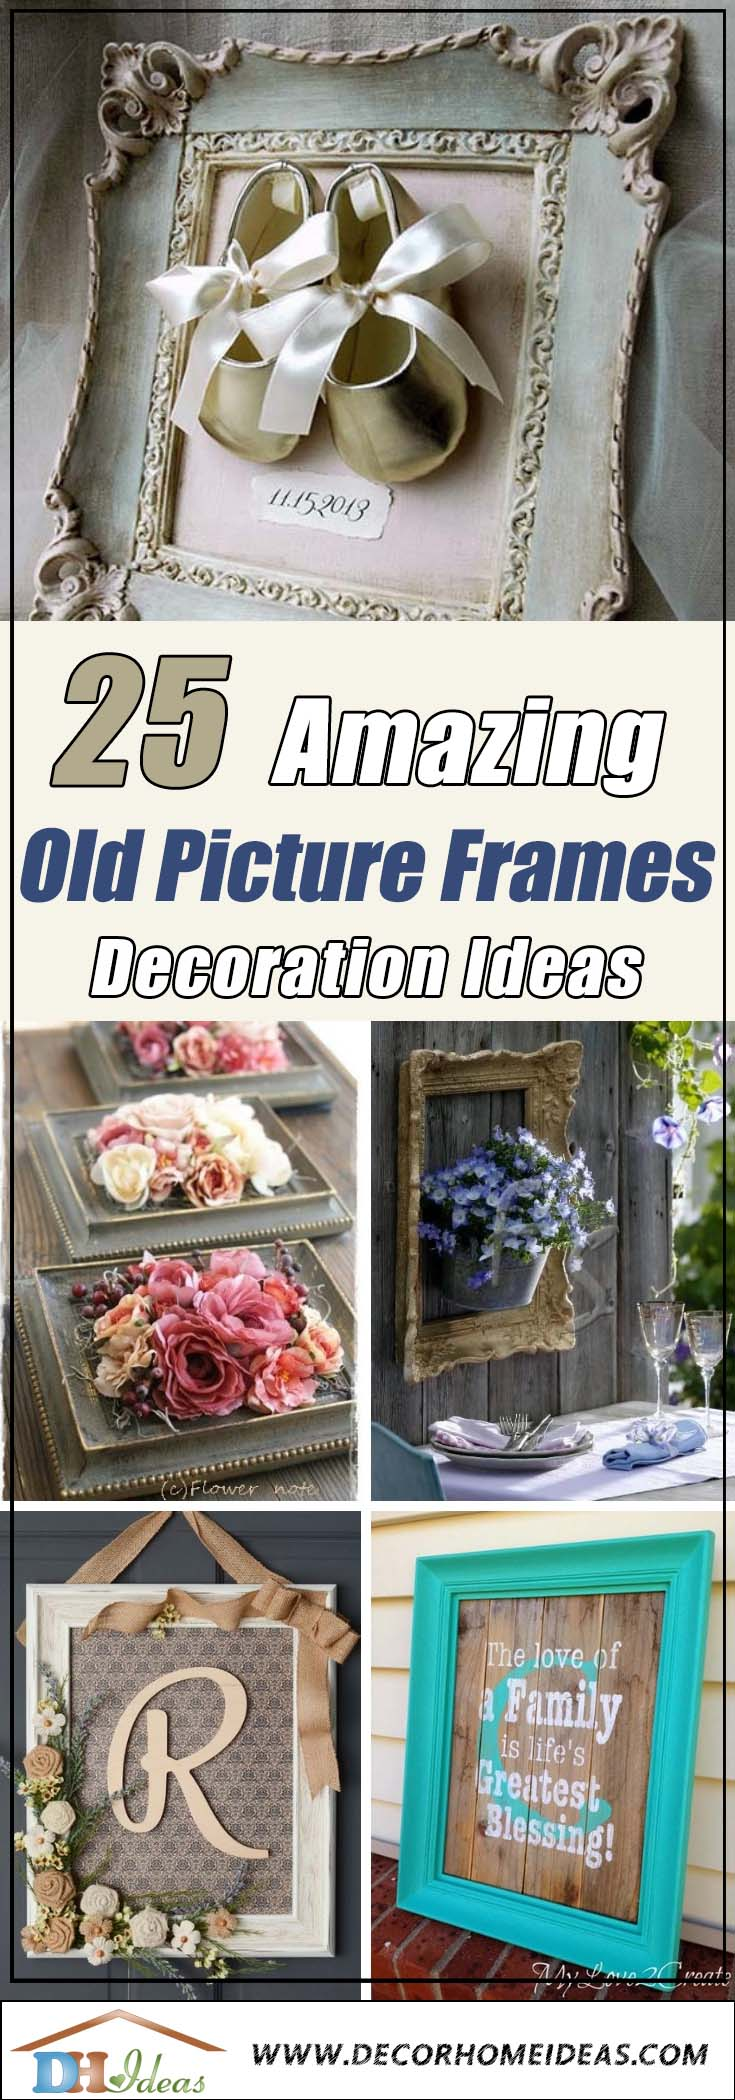 25 Amazing Creative Ways To Use Old Picture Frames | Creative ideas, projects and DIY with old picture frames. #diyproject #diy #makeover #decor #decoration #pictures #frames #vintage #decorhomeideas